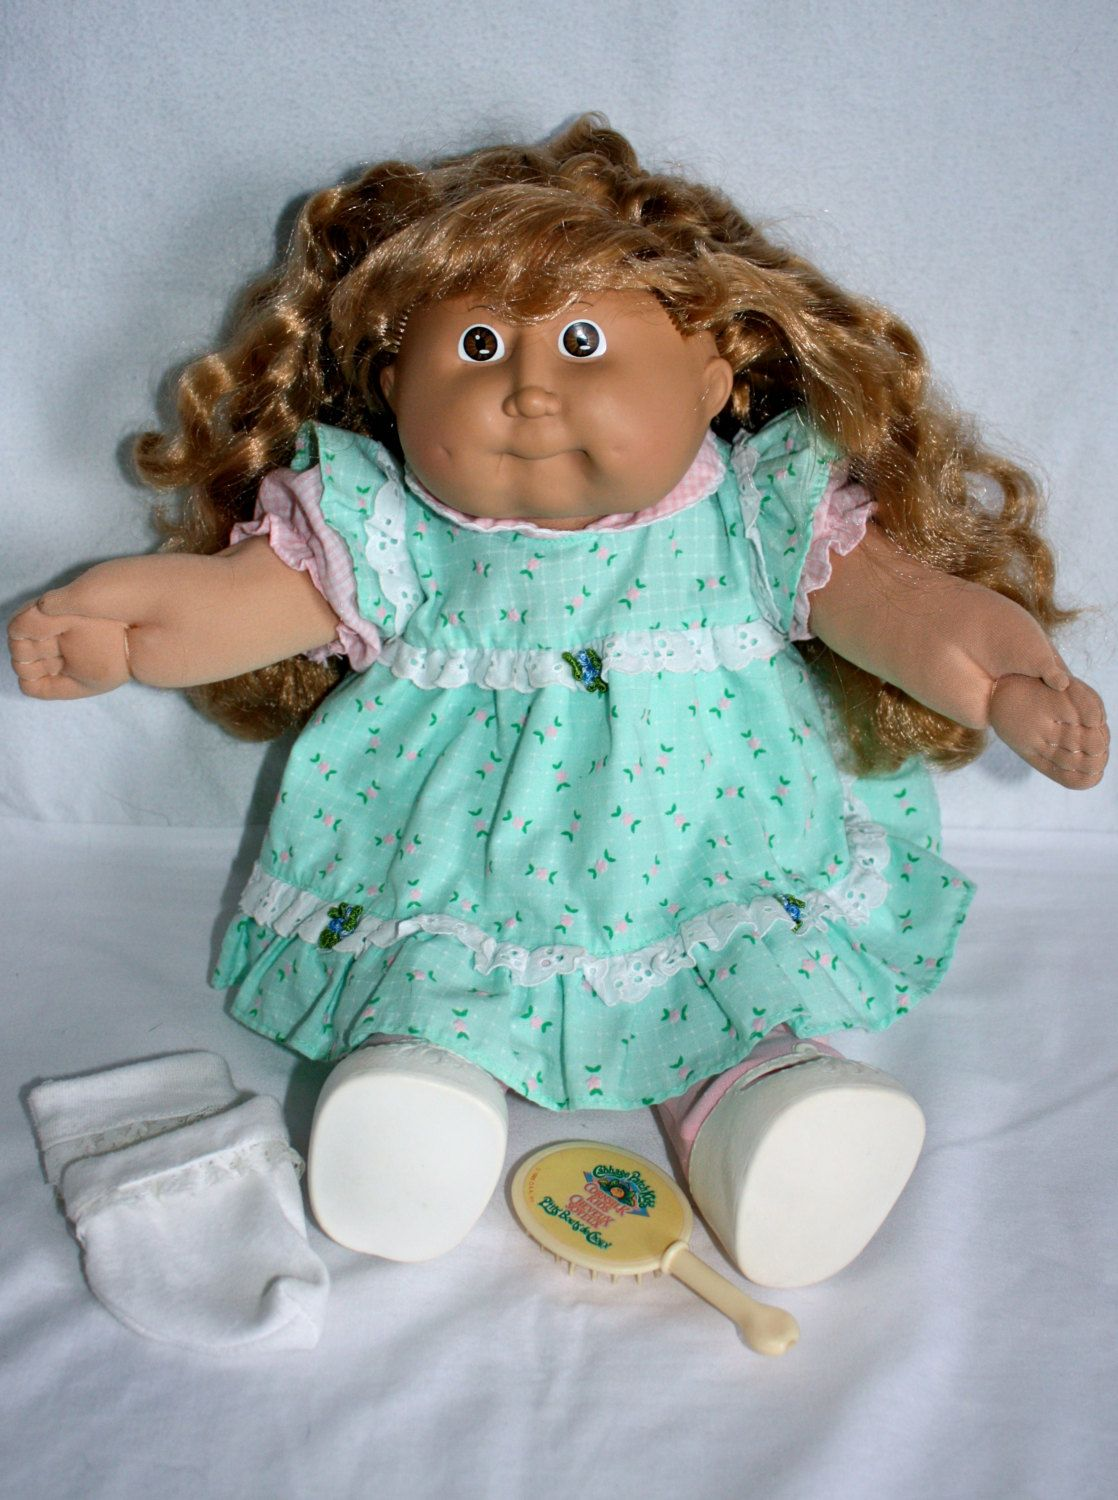 This is an original, 1980s Cabbage Patch #doll with real blond corn-silk  hair. | Original cabbage patch dolls, Cabbage patch babies, Cabbage patch  dolls